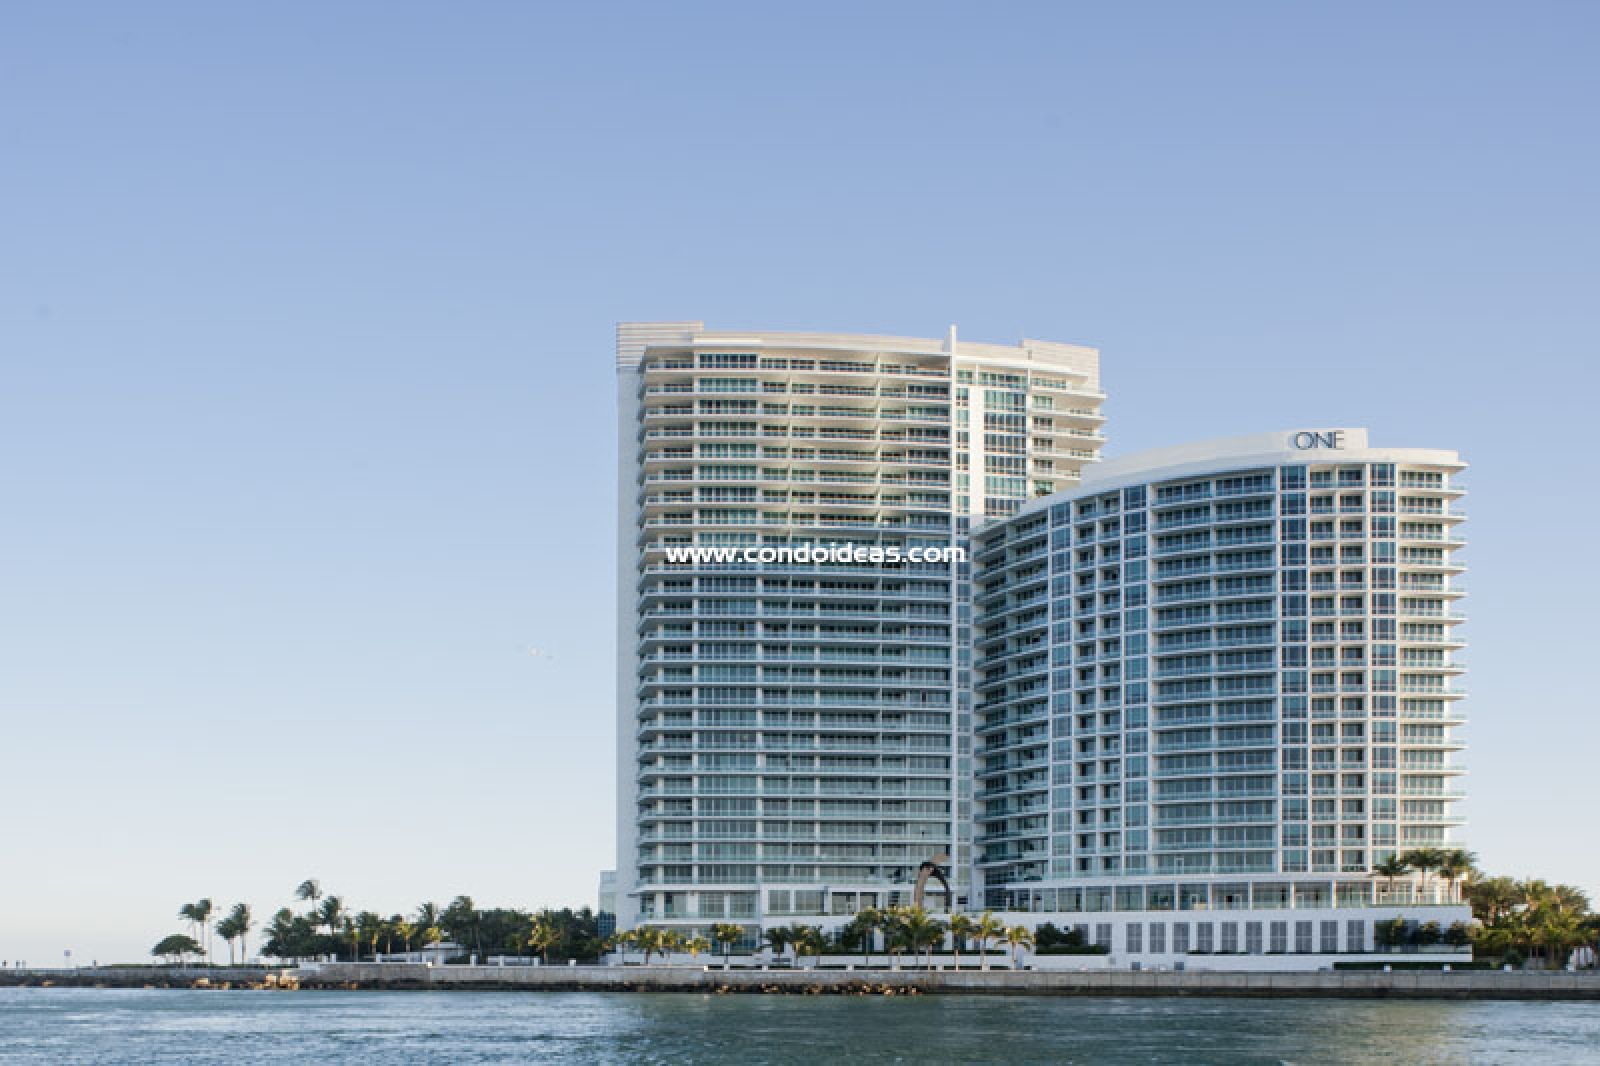 One Bal Harbour condo